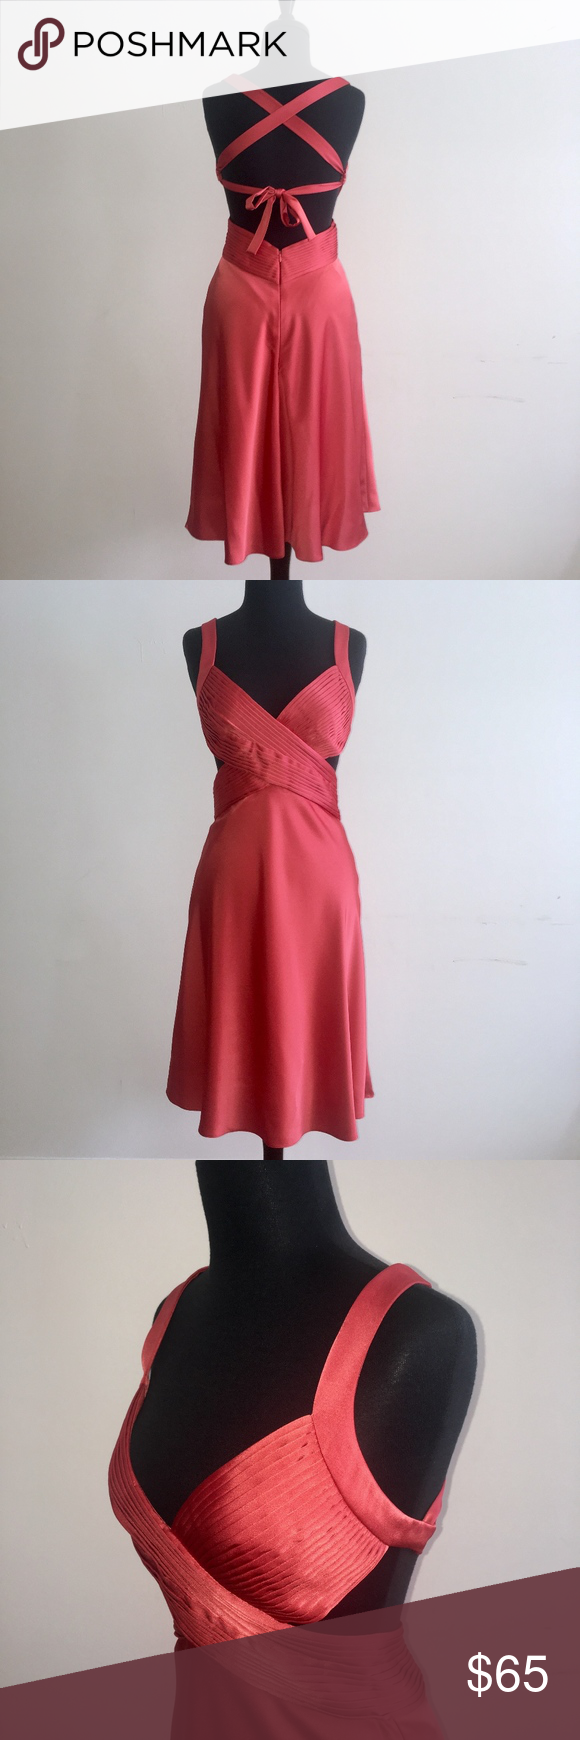 BCBGMaxAzria Coral Strappy Cocktail Dress Simply stunning and so difficult to part with! This BCBGMaxAzria cocktail dress is like no other! Pintuck detail across bust, side cutouts, and open back with crisscross strap design. 100% polyester with satin finish. Color is a deep coral. Worn once. In excellent condition. BCBGMaxAzria Dresses #backlesscocktaildress BCBGMaxAzria Coral Strappy Cocktail Dress Simply stunning and so difficult to part with! This BCBGMaxAzria cocktail dress is like no other #backlesscocktaildress